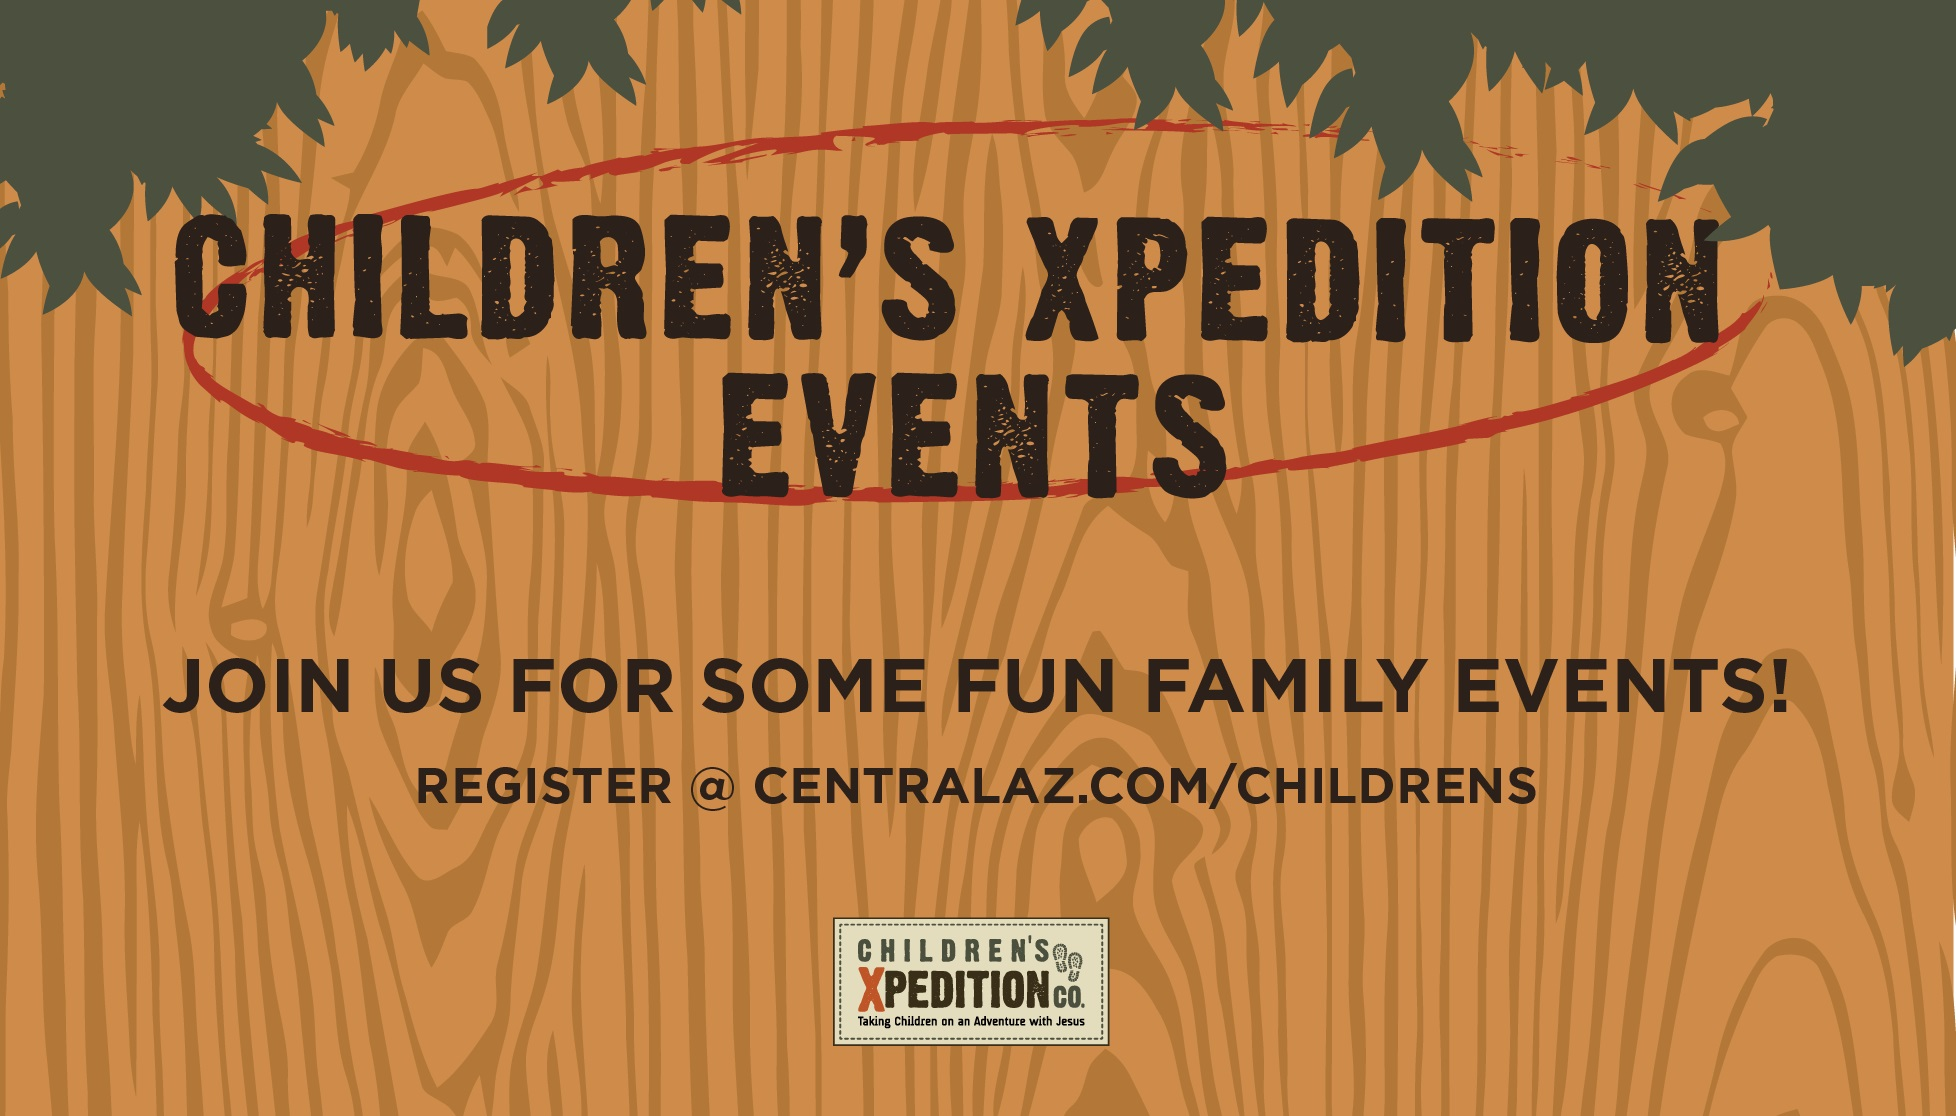 Children's Xpedition Events